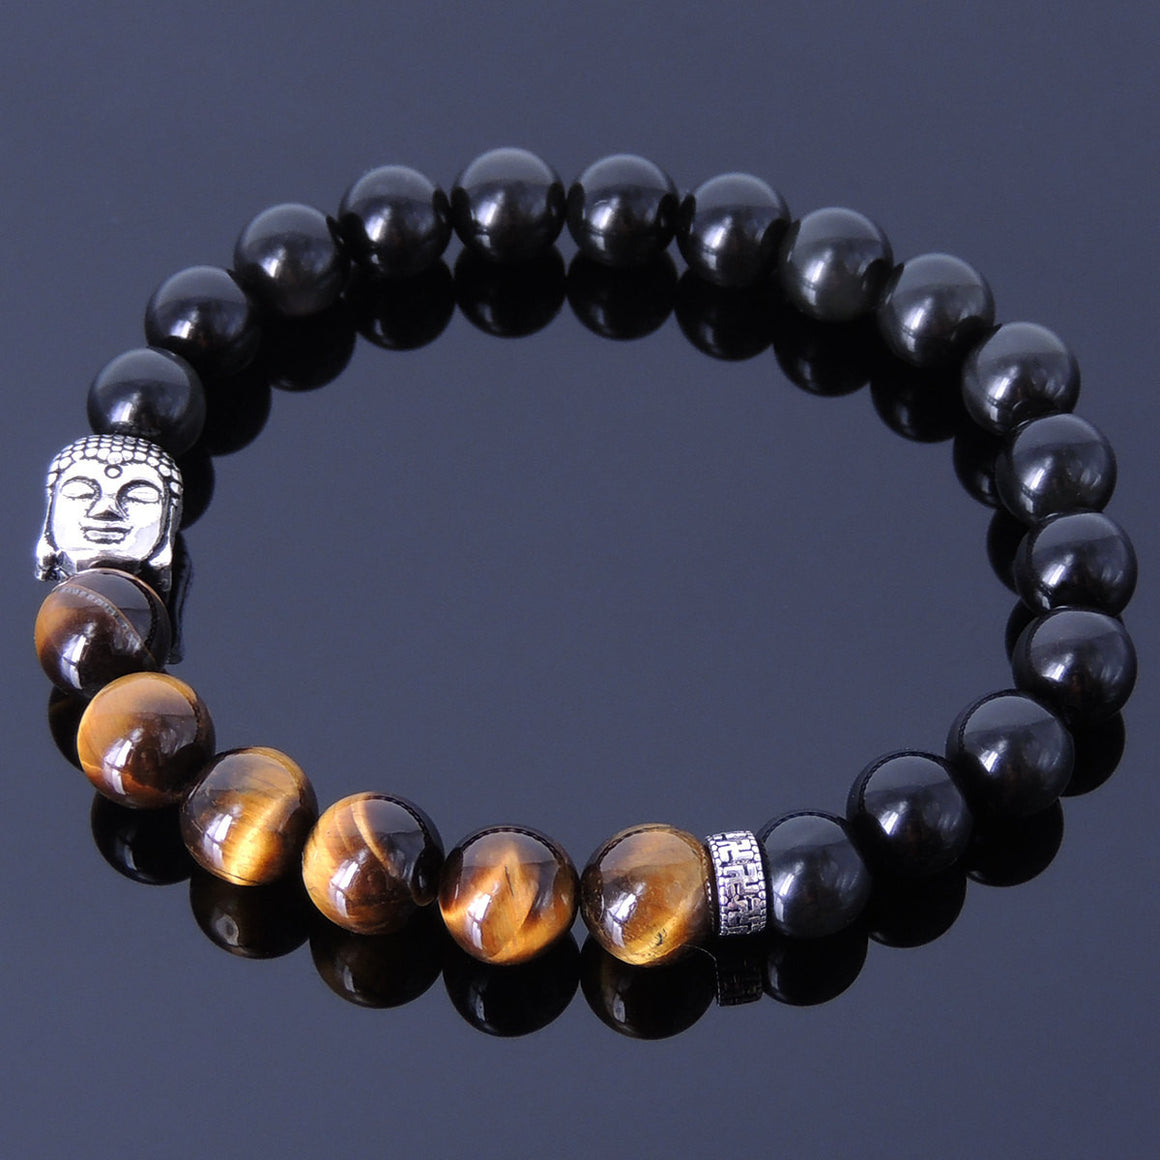 Rainbow Black Obsidian & Brown Tiger Eye Healing Gemstone Bracelet with S925 Sterling Silver Sakyamuni Buddha & OM Meditation Spacer Bead - Handmade by Gem & Silver BR329